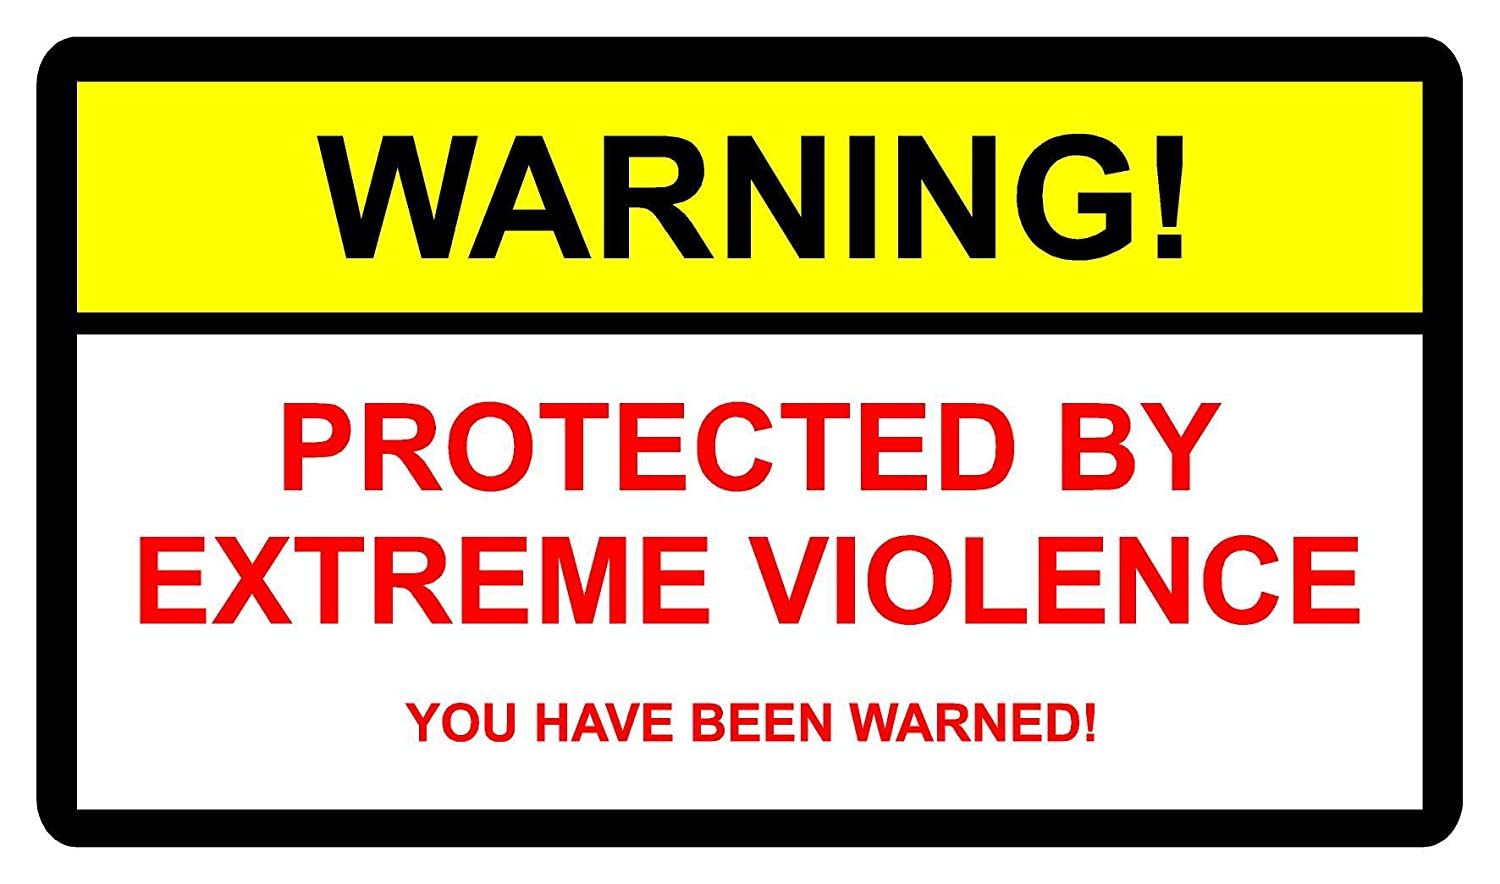 STICKER PROTECTED BY EXTREME VIOLENCE OUTLAW ANGELS 666 HELLS BIKER 8 1 150mm x 100mm KPCM Display